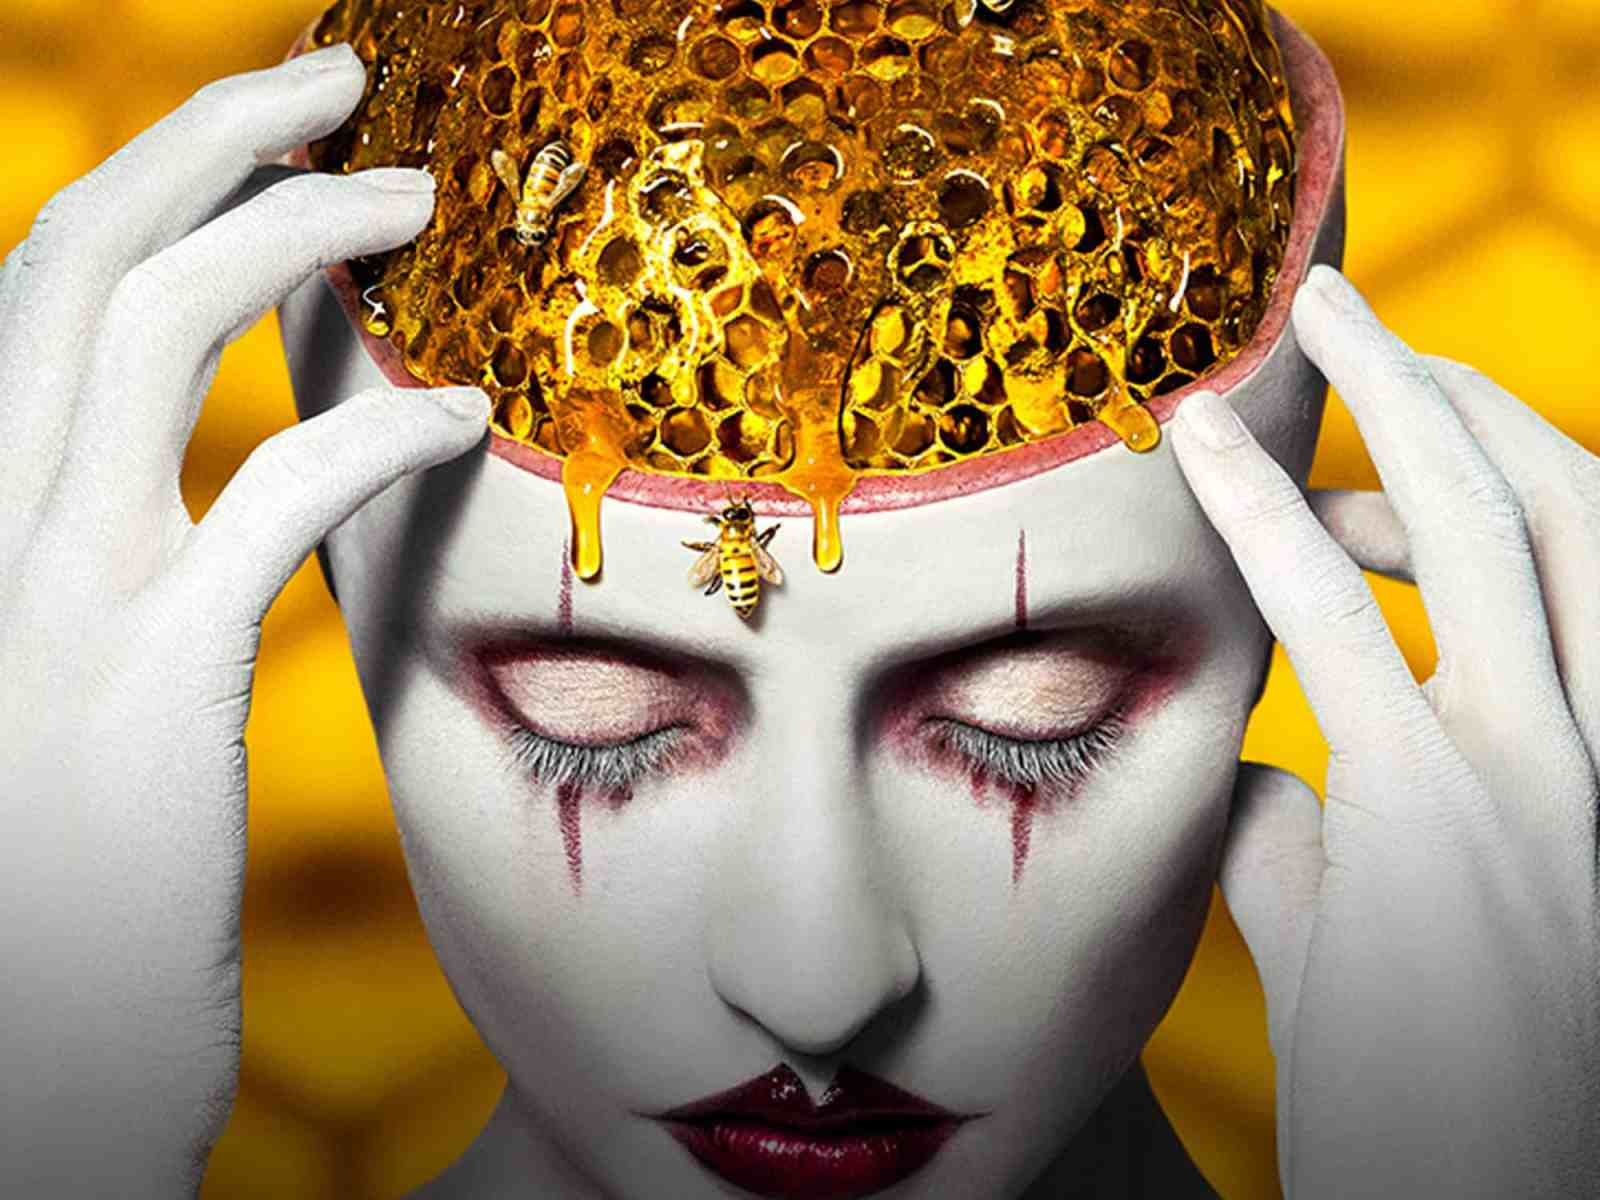 With season 8 of American Horror Story right around the corner, fans are coming up with some crazy AHS theories! Here's some of our faves!